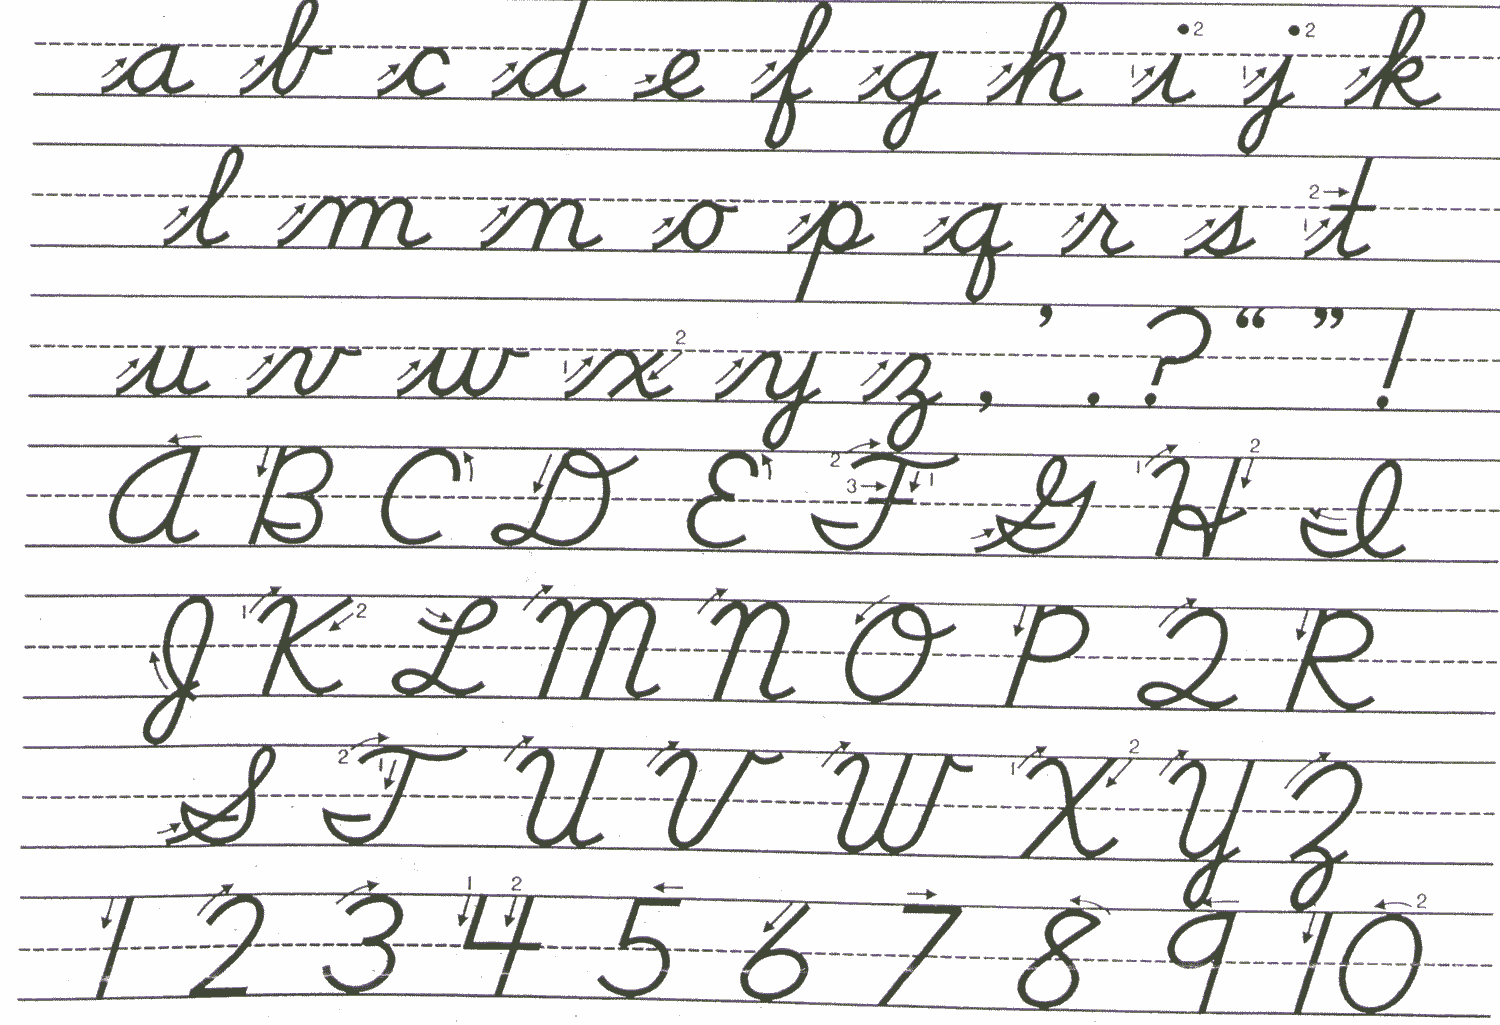 Worksheets French Handwriting Alphabet what skills did you learn that will be obsolete by the next 50 years cursive handwriting practice